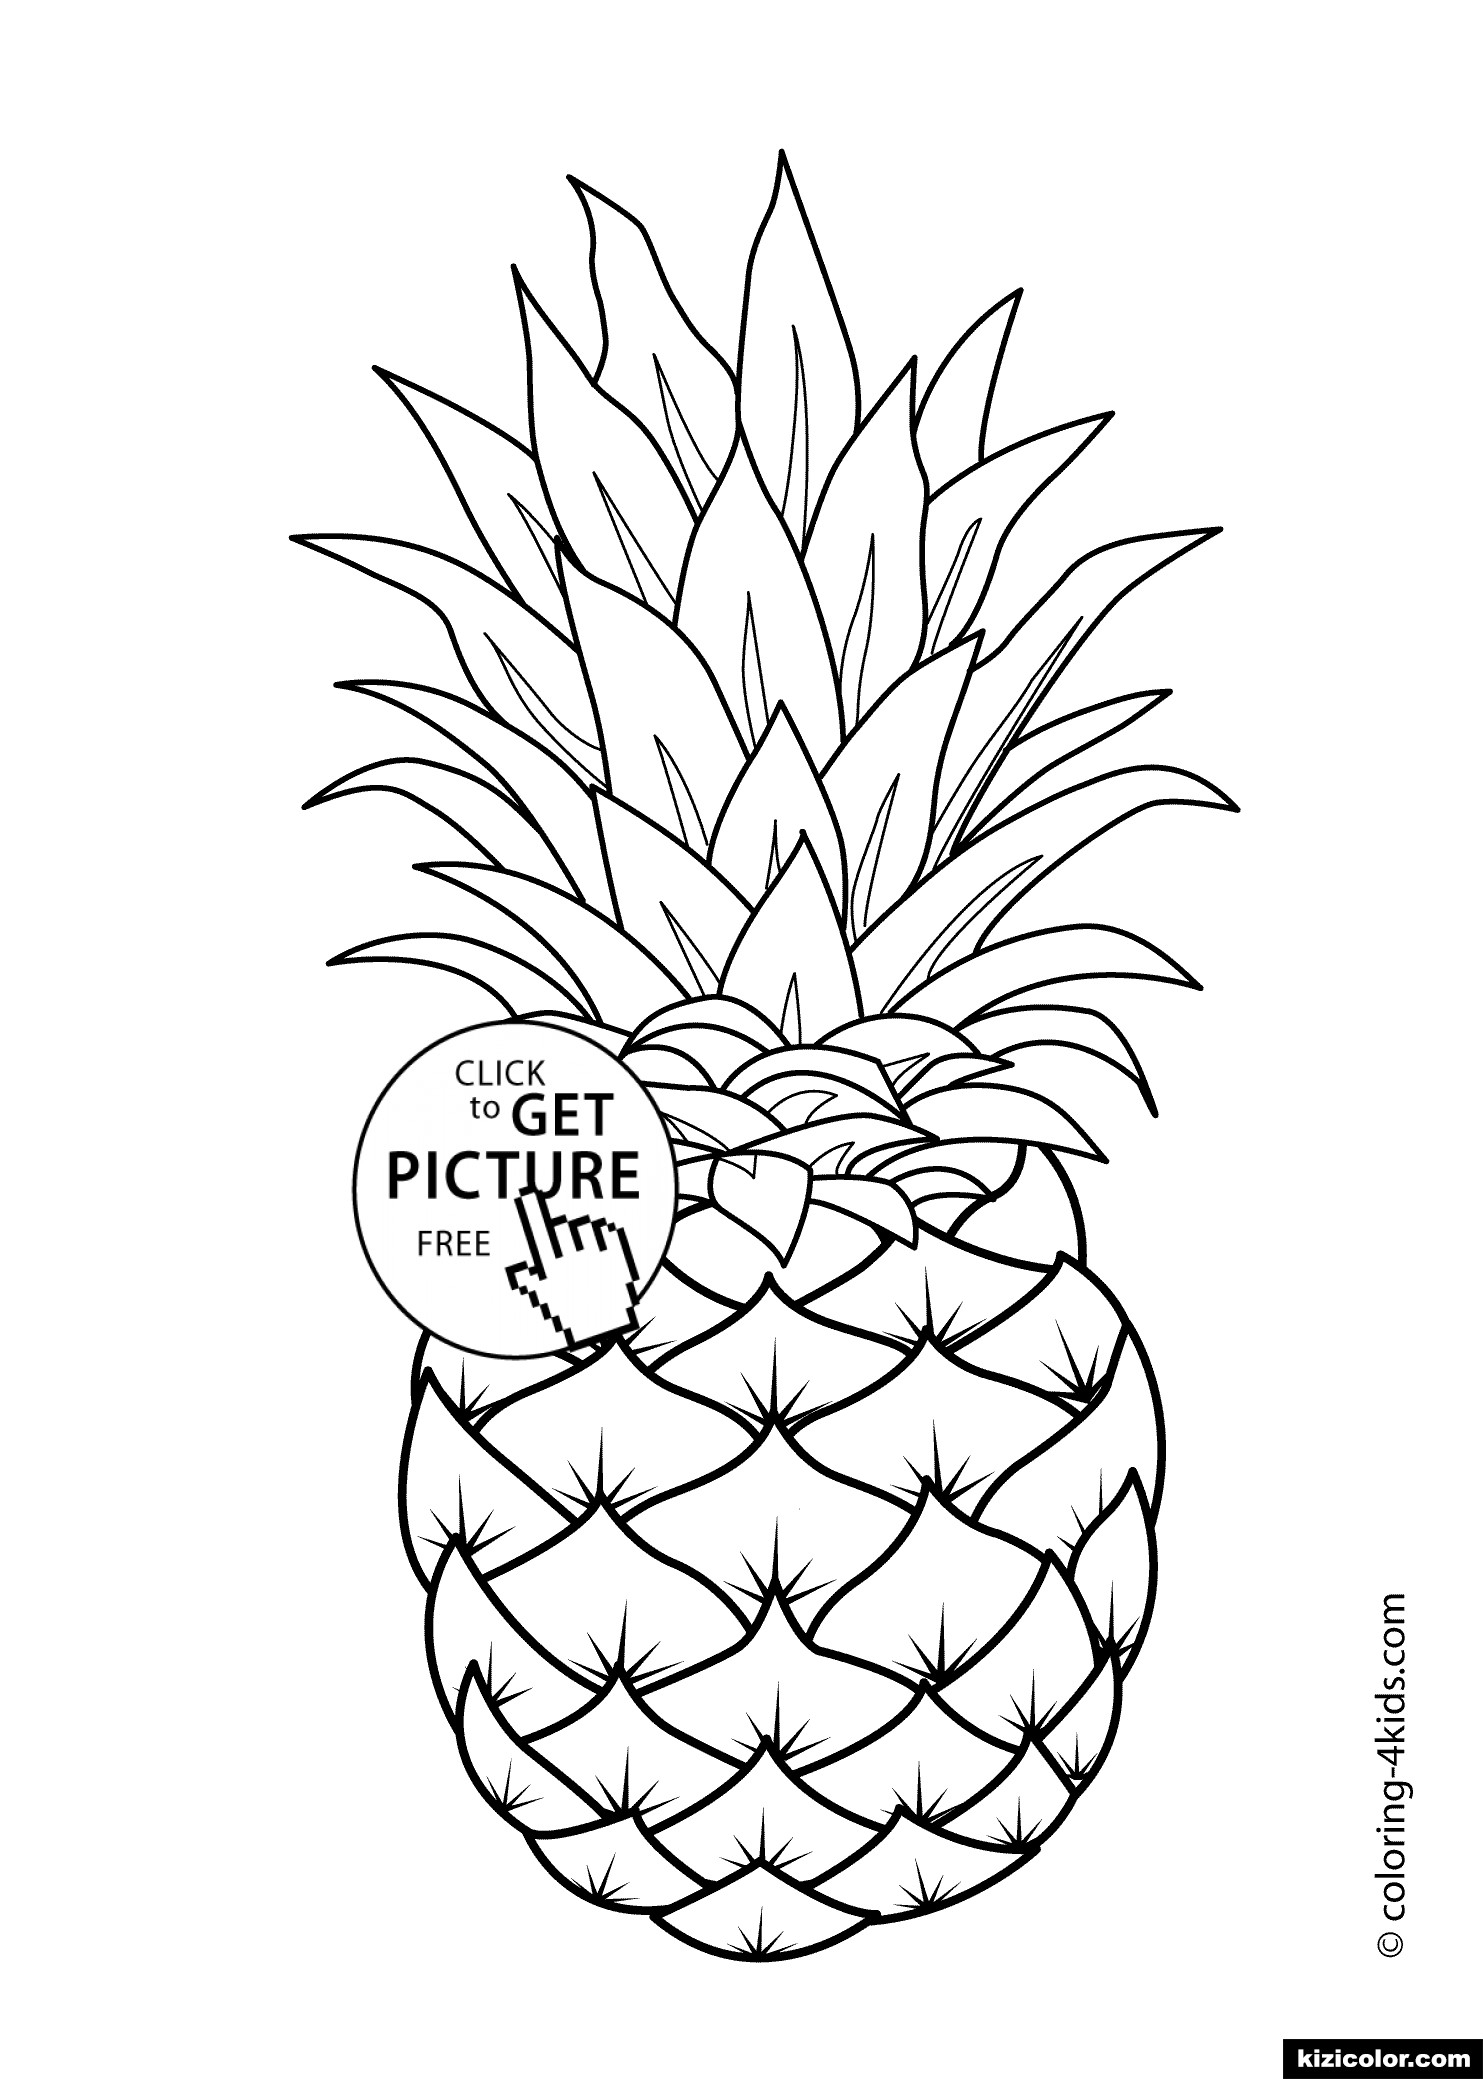 Cool Coloriage Ananas 97 Avec supplémentaire Coloriage Inspiration with Coloriage Ananas